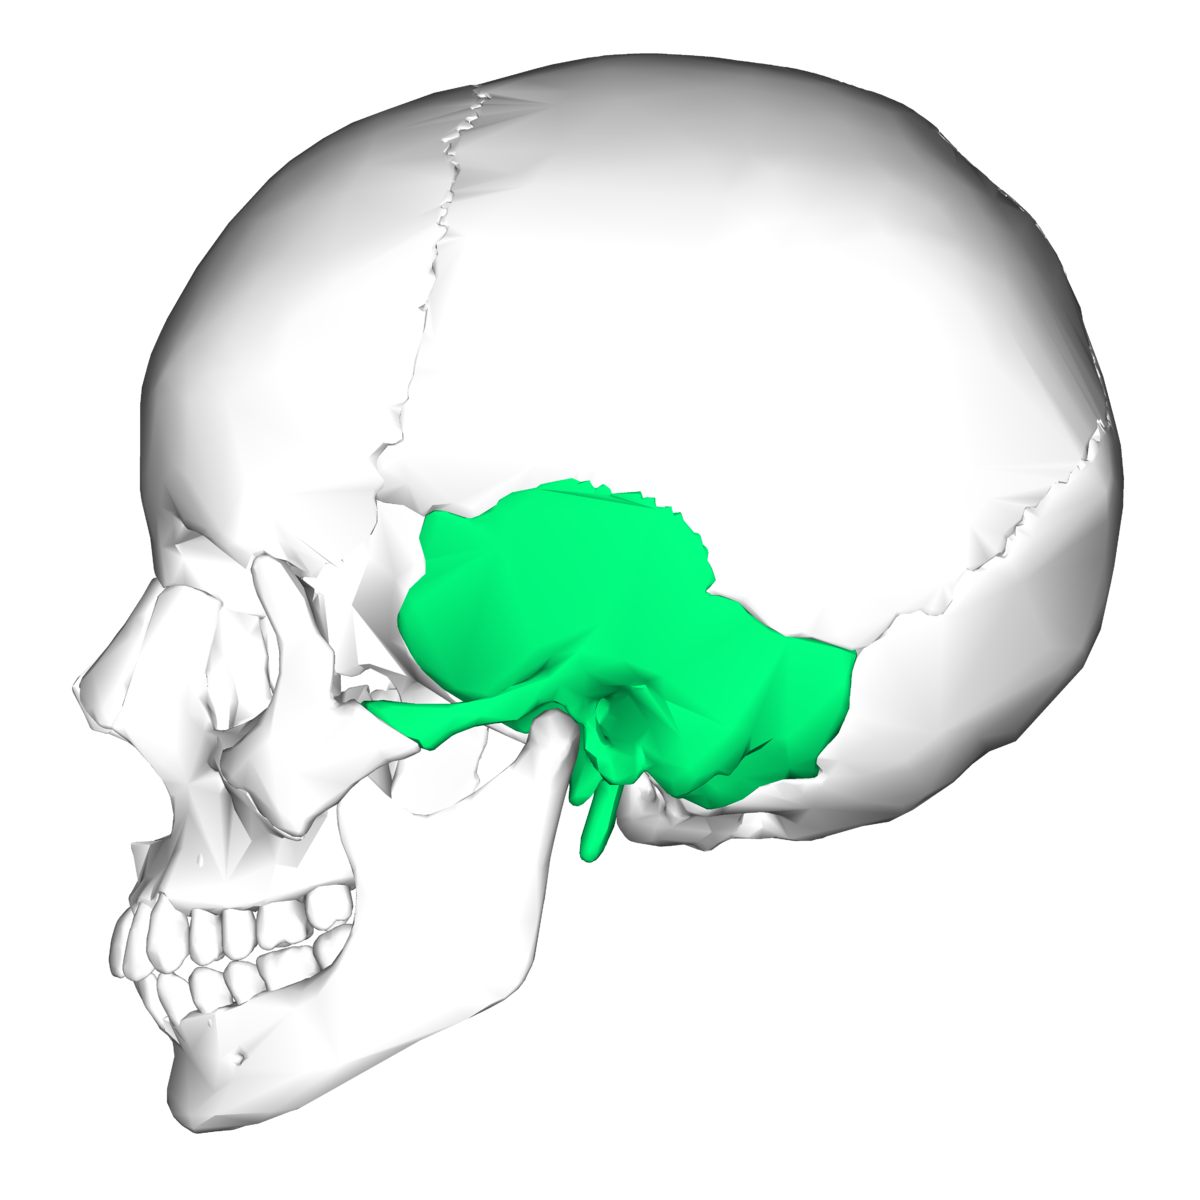 Temporal bone on diagram of body cavities